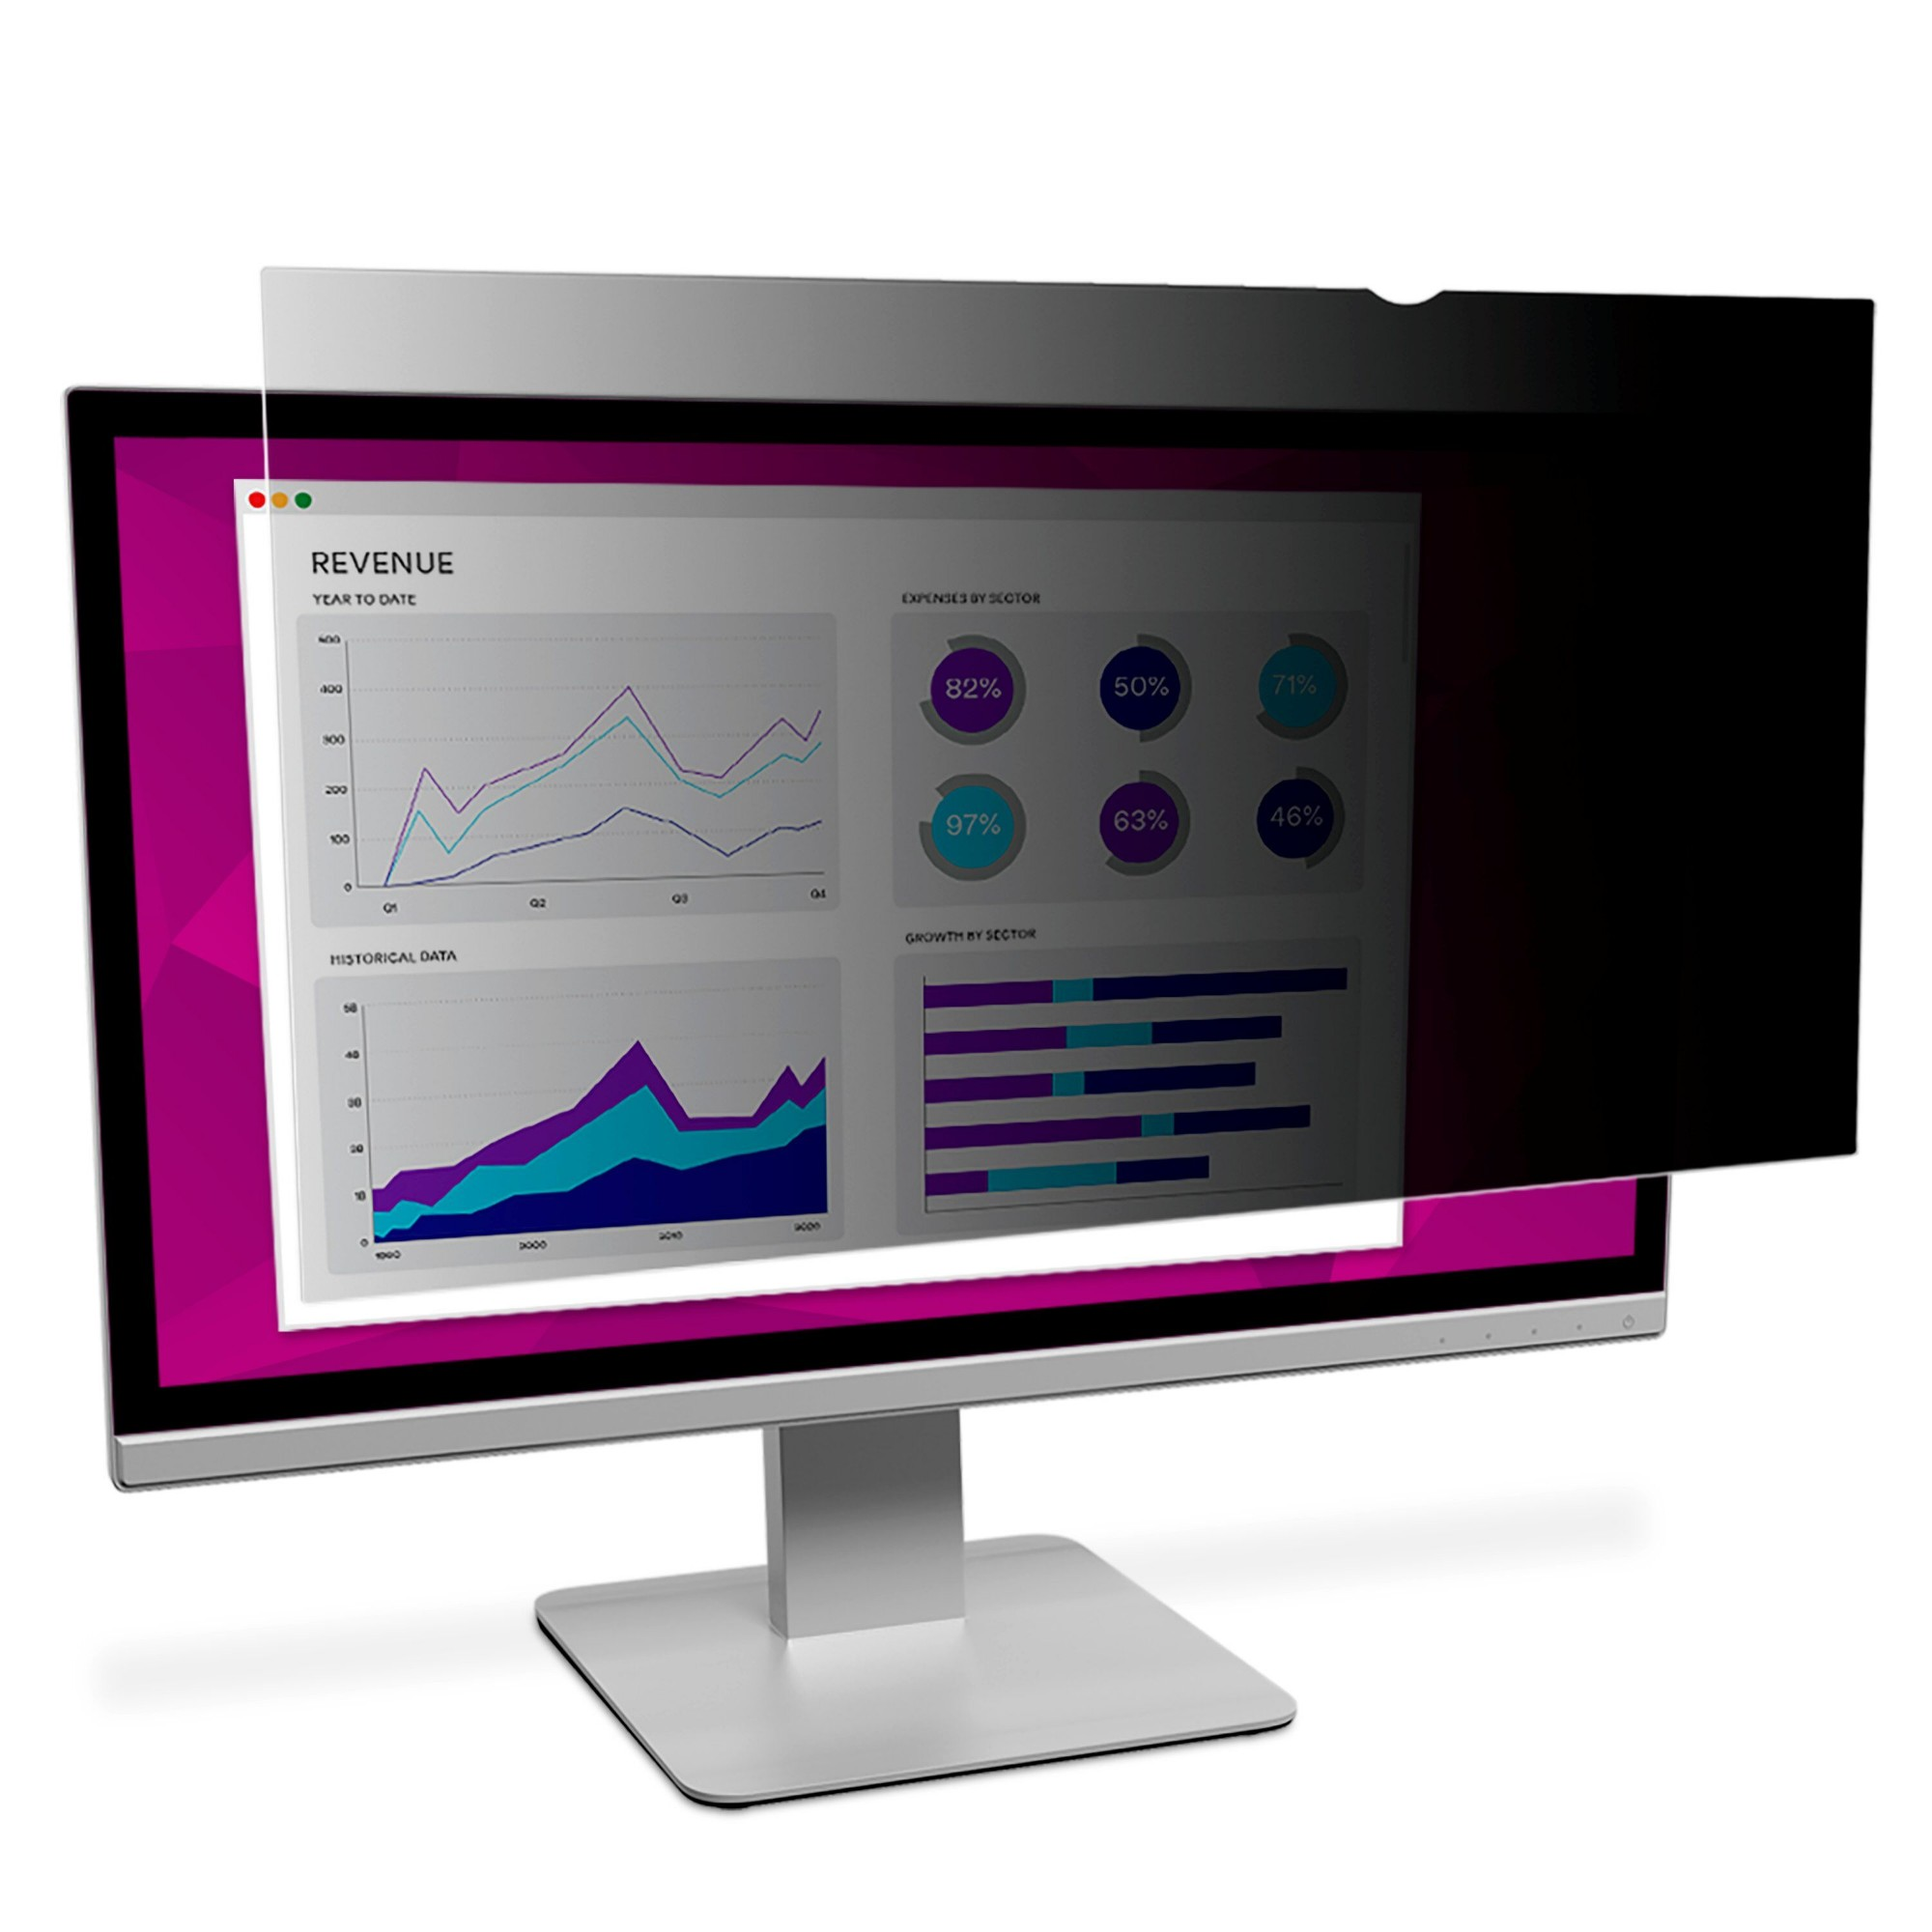 High Clarity Privacy Filter Hc215w9b For 21.5in Widescreen Monitor (16:9 Aspect Ratio)